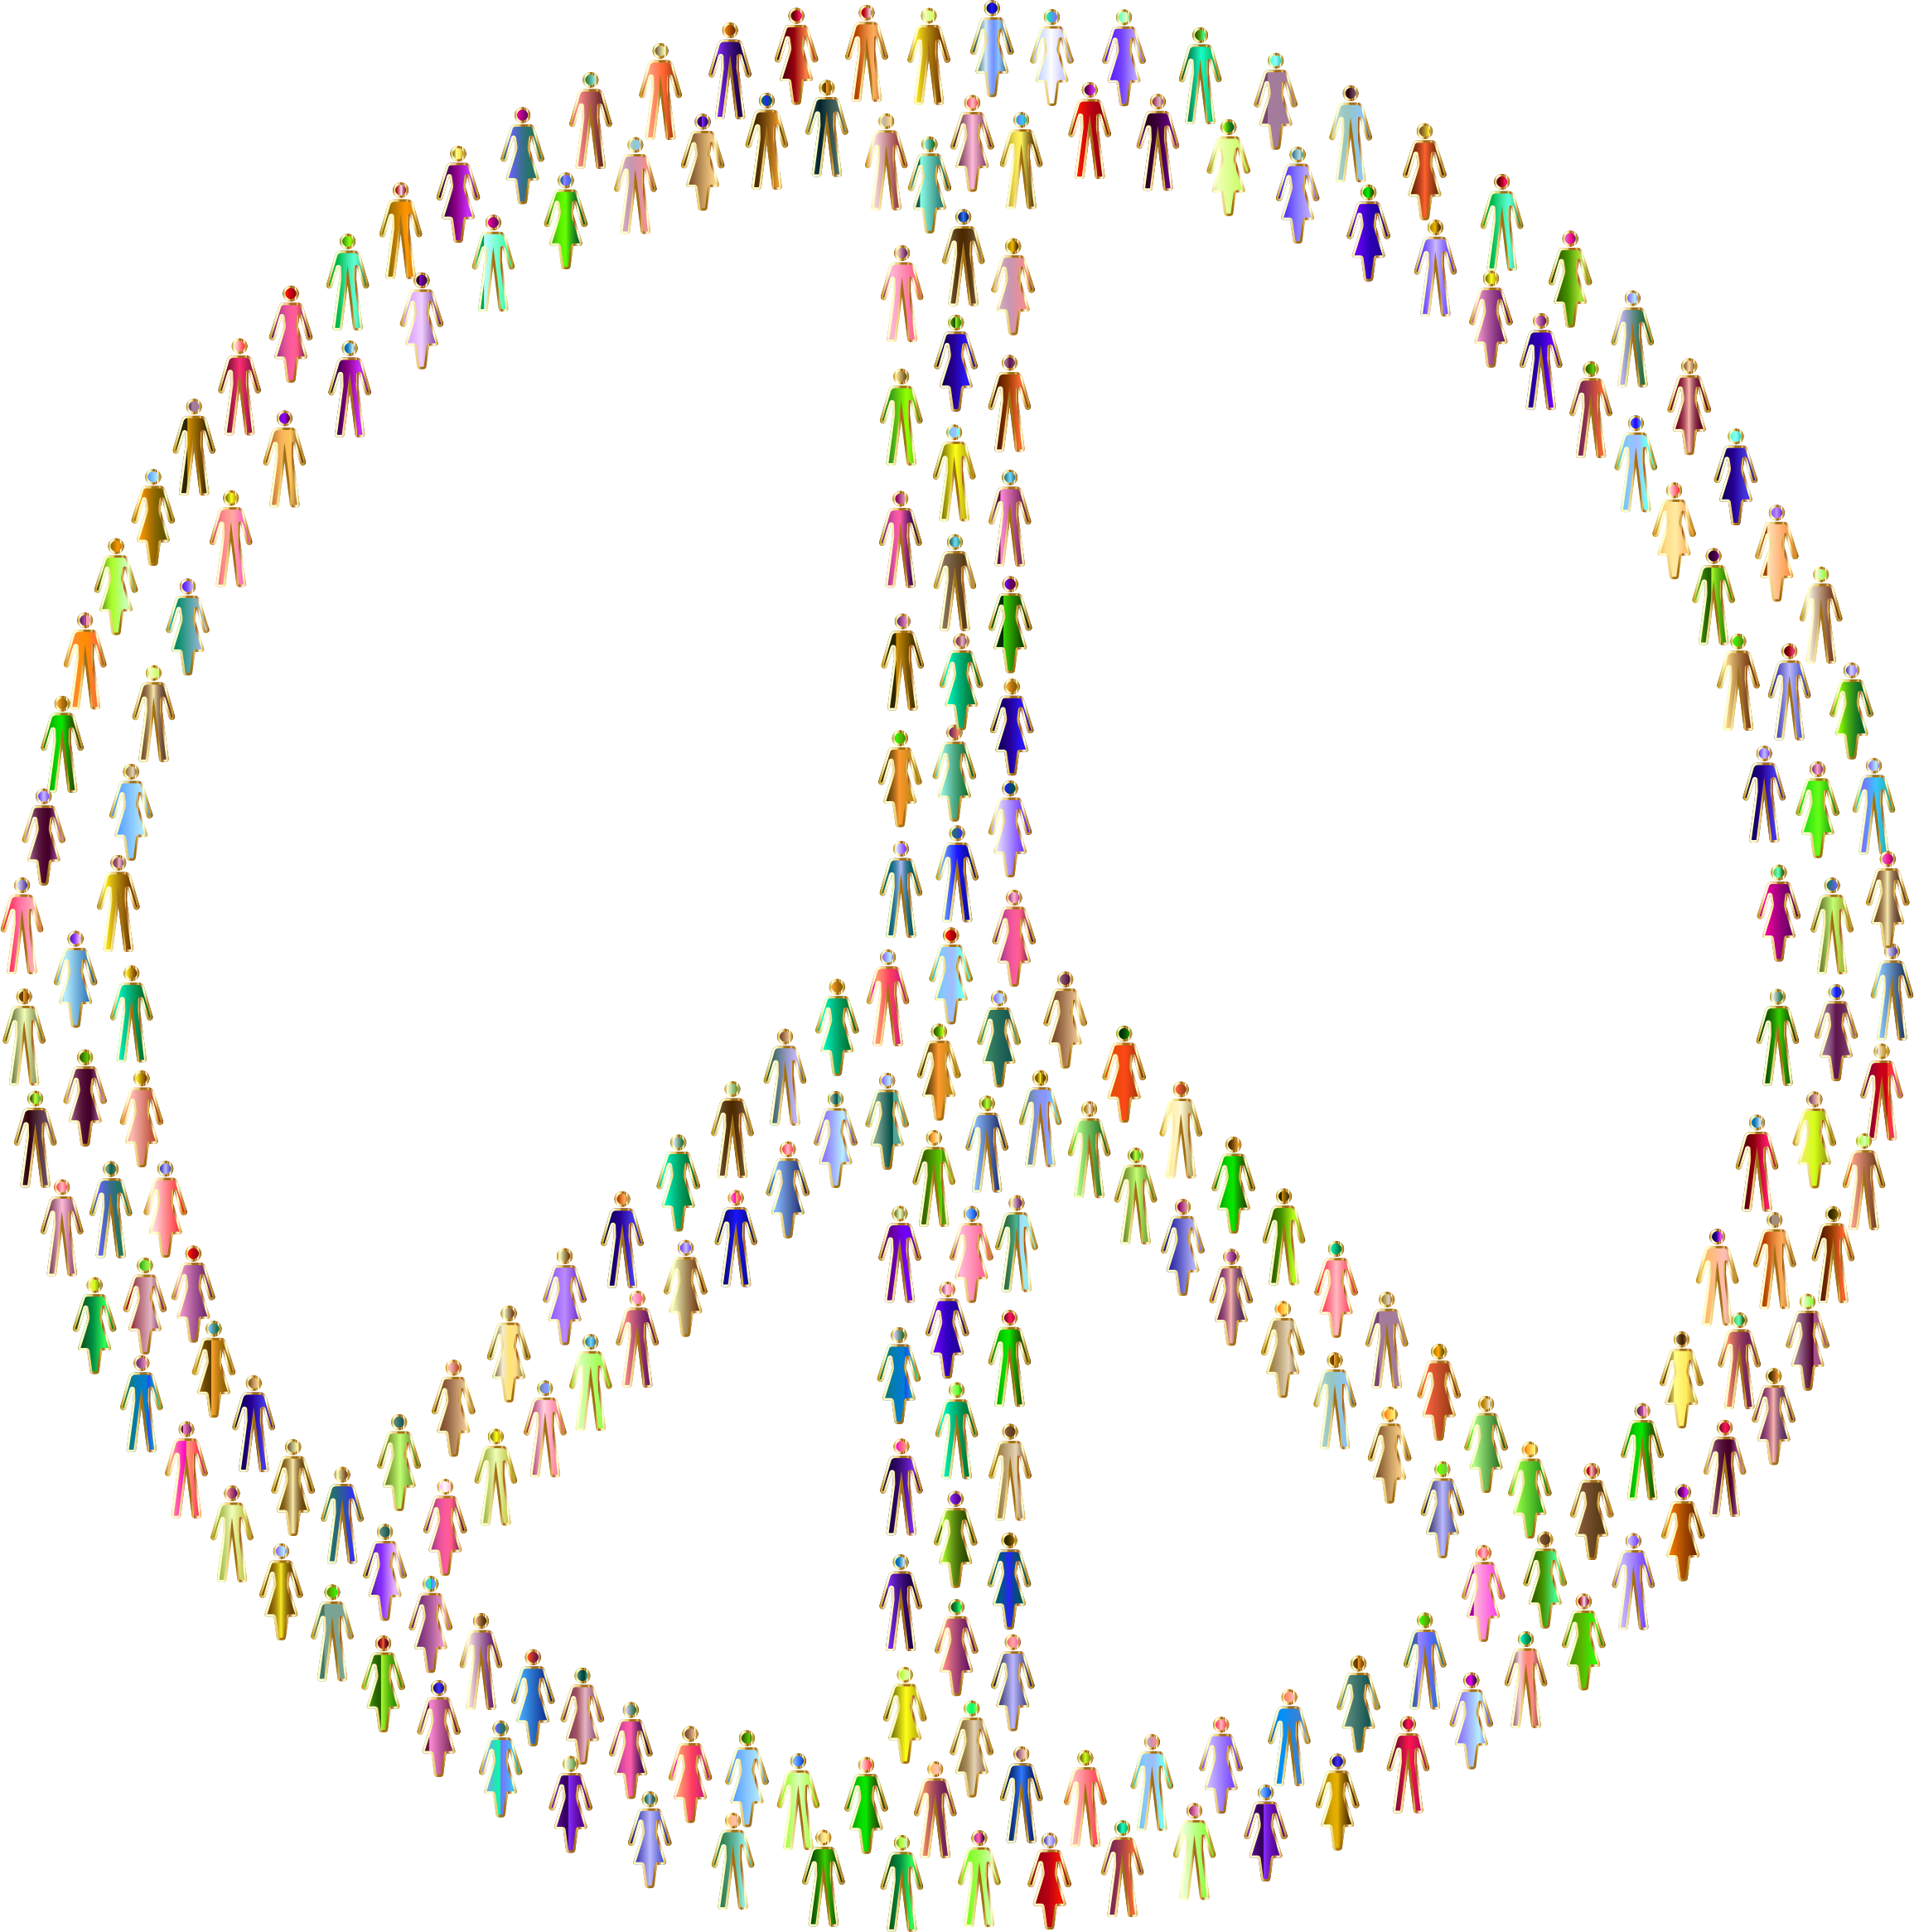 Prismatic People For Peace Mark II 6 No Background by GDJ